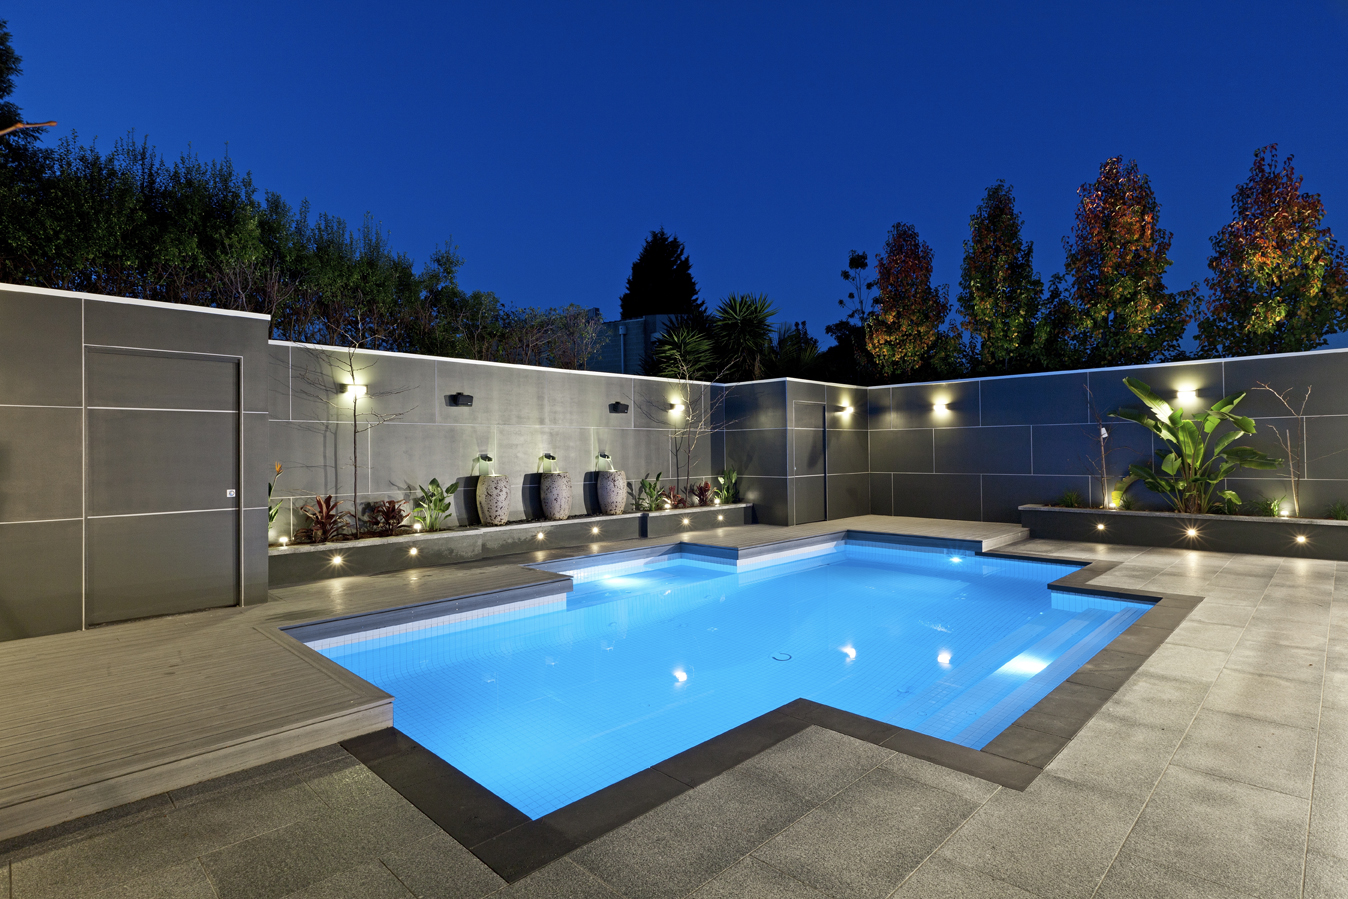 Backyard landscaping ideas swimming pool design for Best home swimming pools